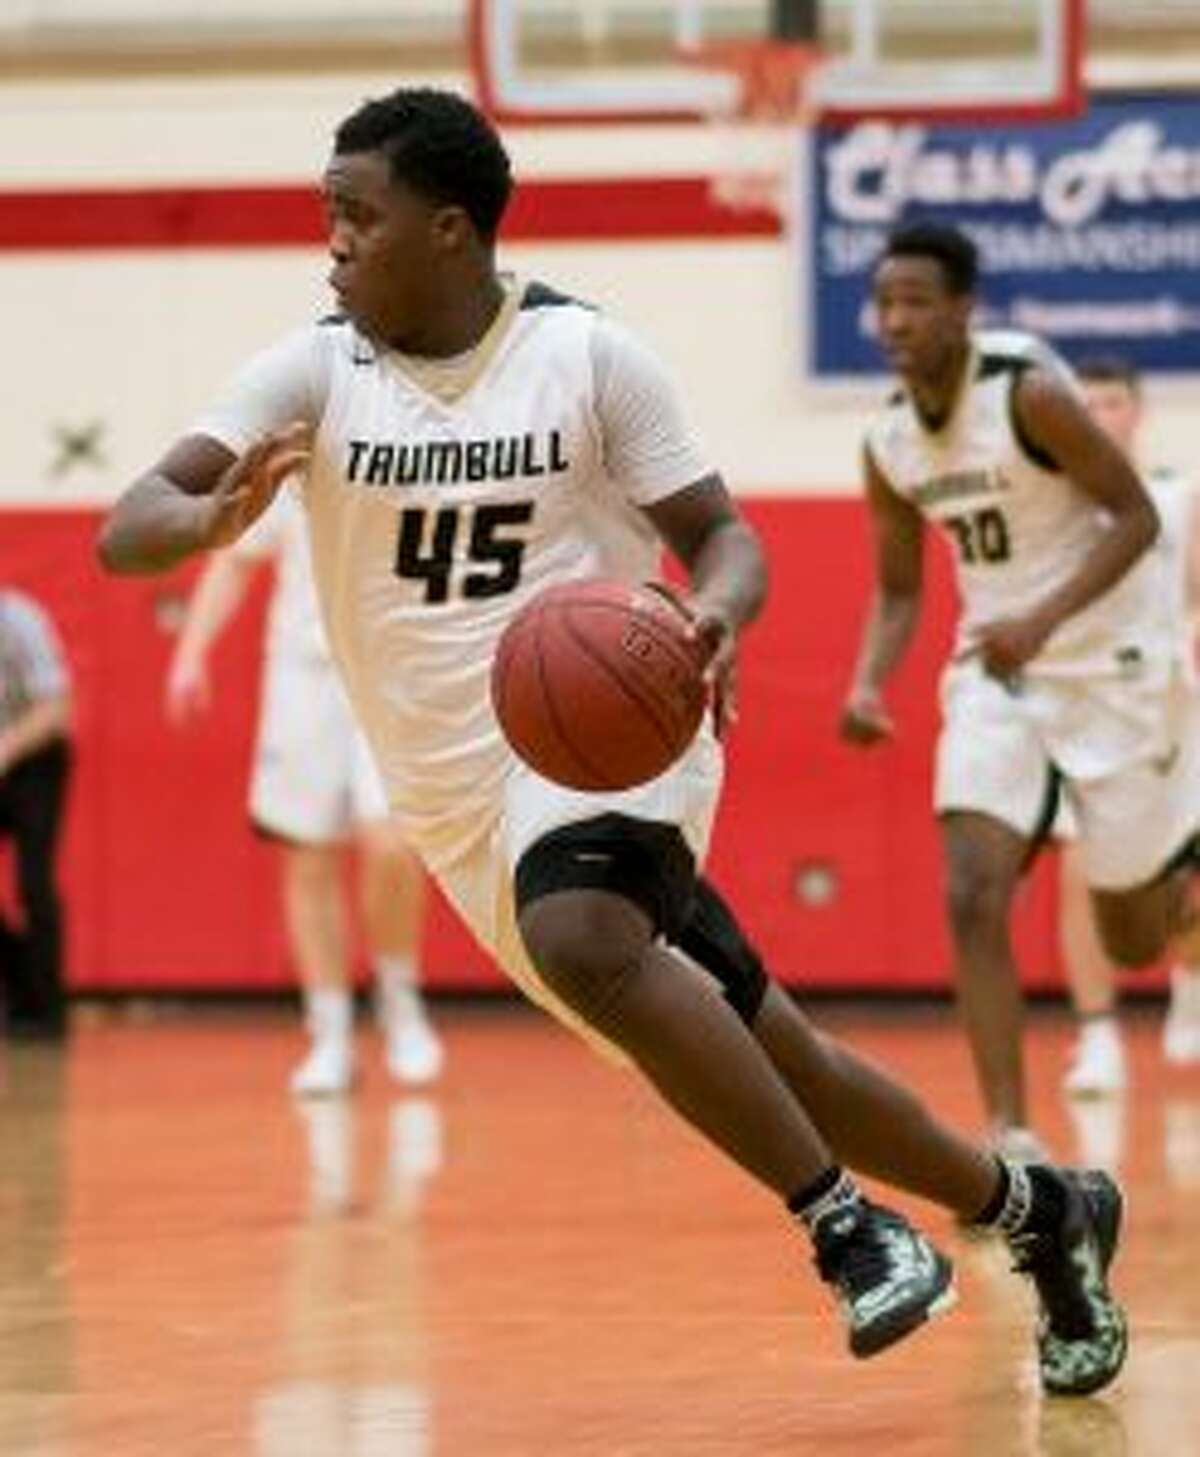 Trumbull High's Quentar Taylor was the guiding light in its win over Staples. - David G. Whitham photo